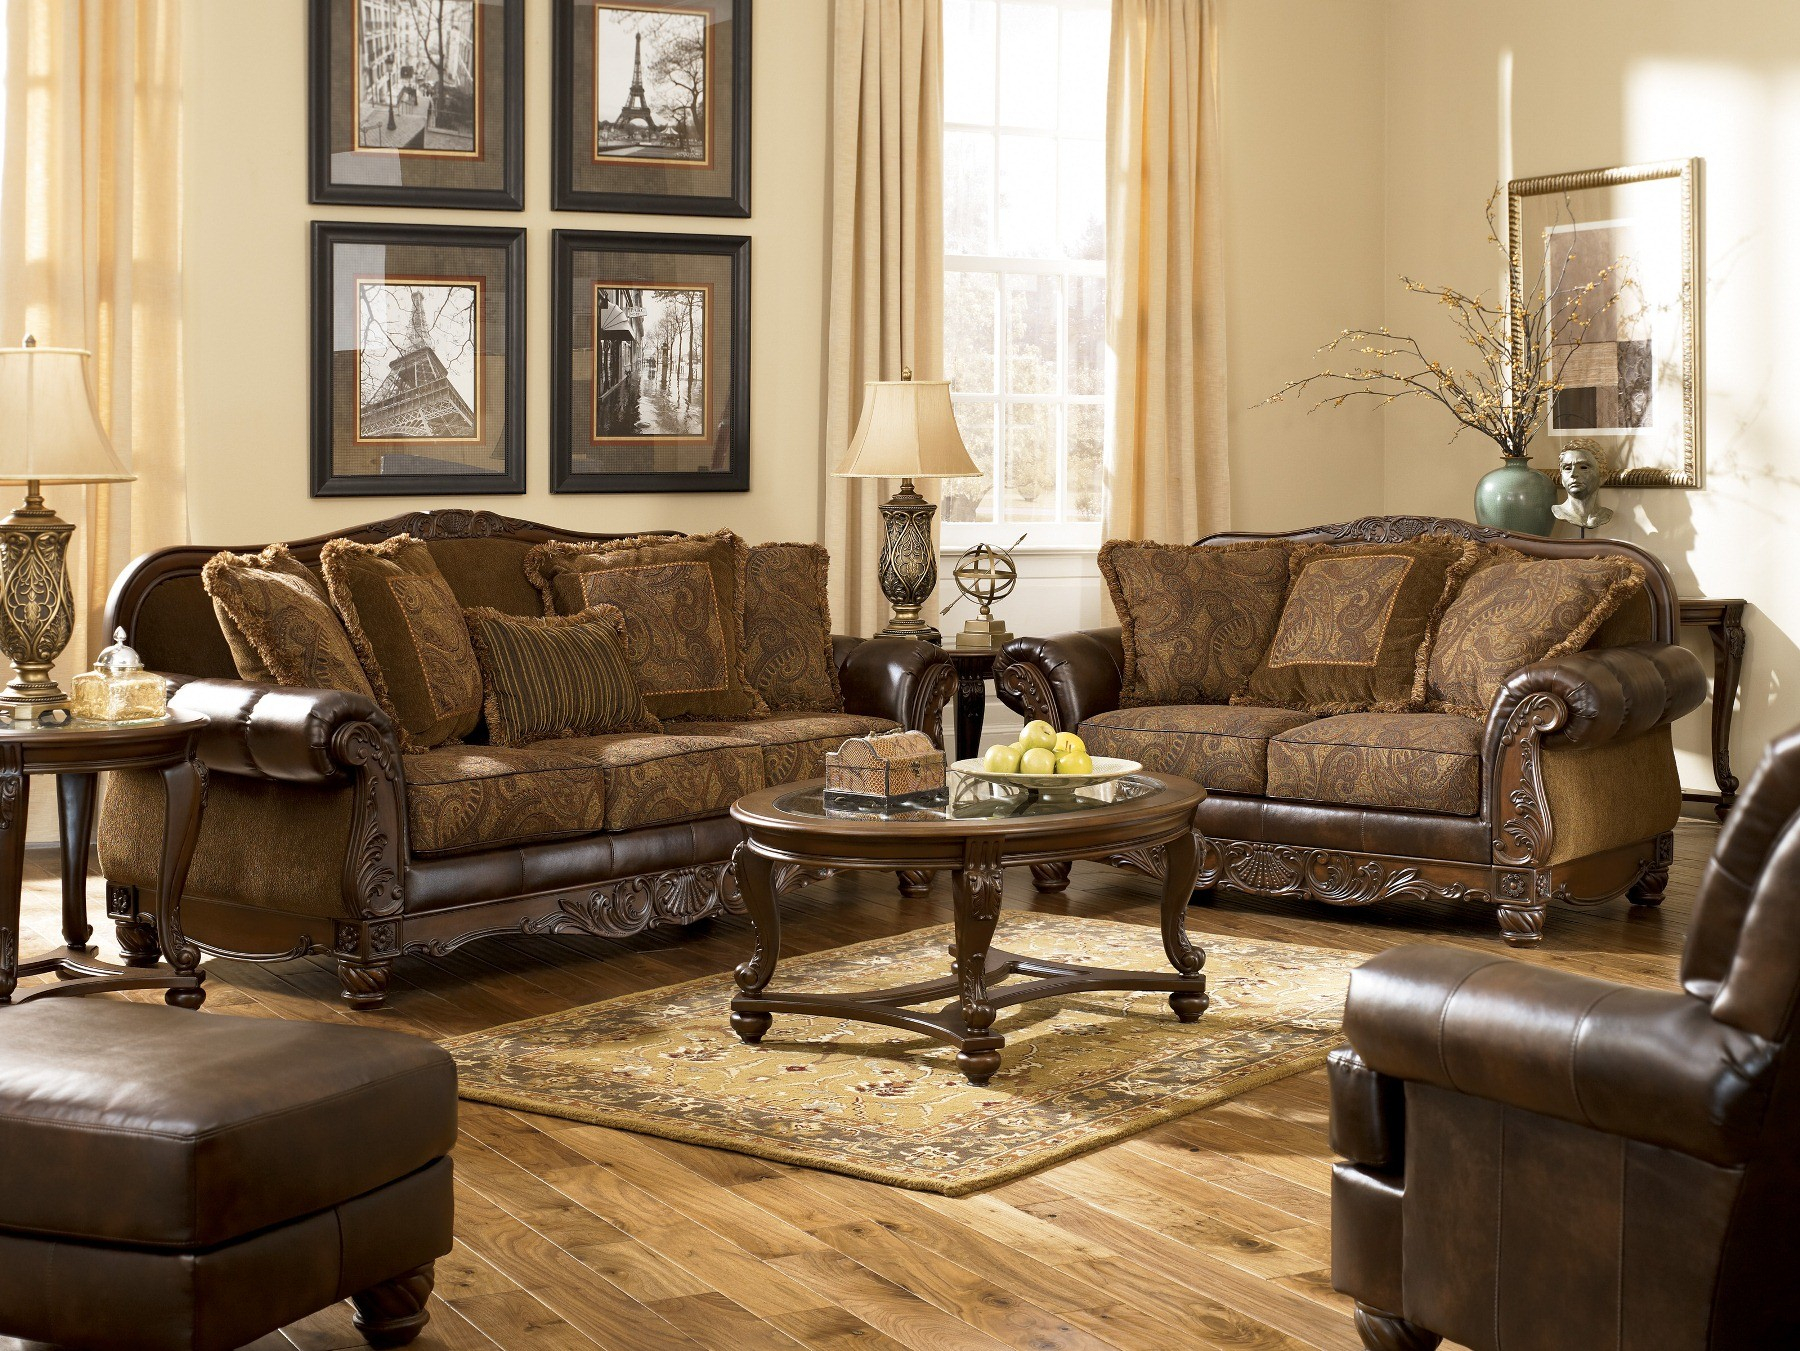 Fresco Durablend Antique Sofa in 10 Smart Concepts of How to Craft Living Room Set For Sale Cheap